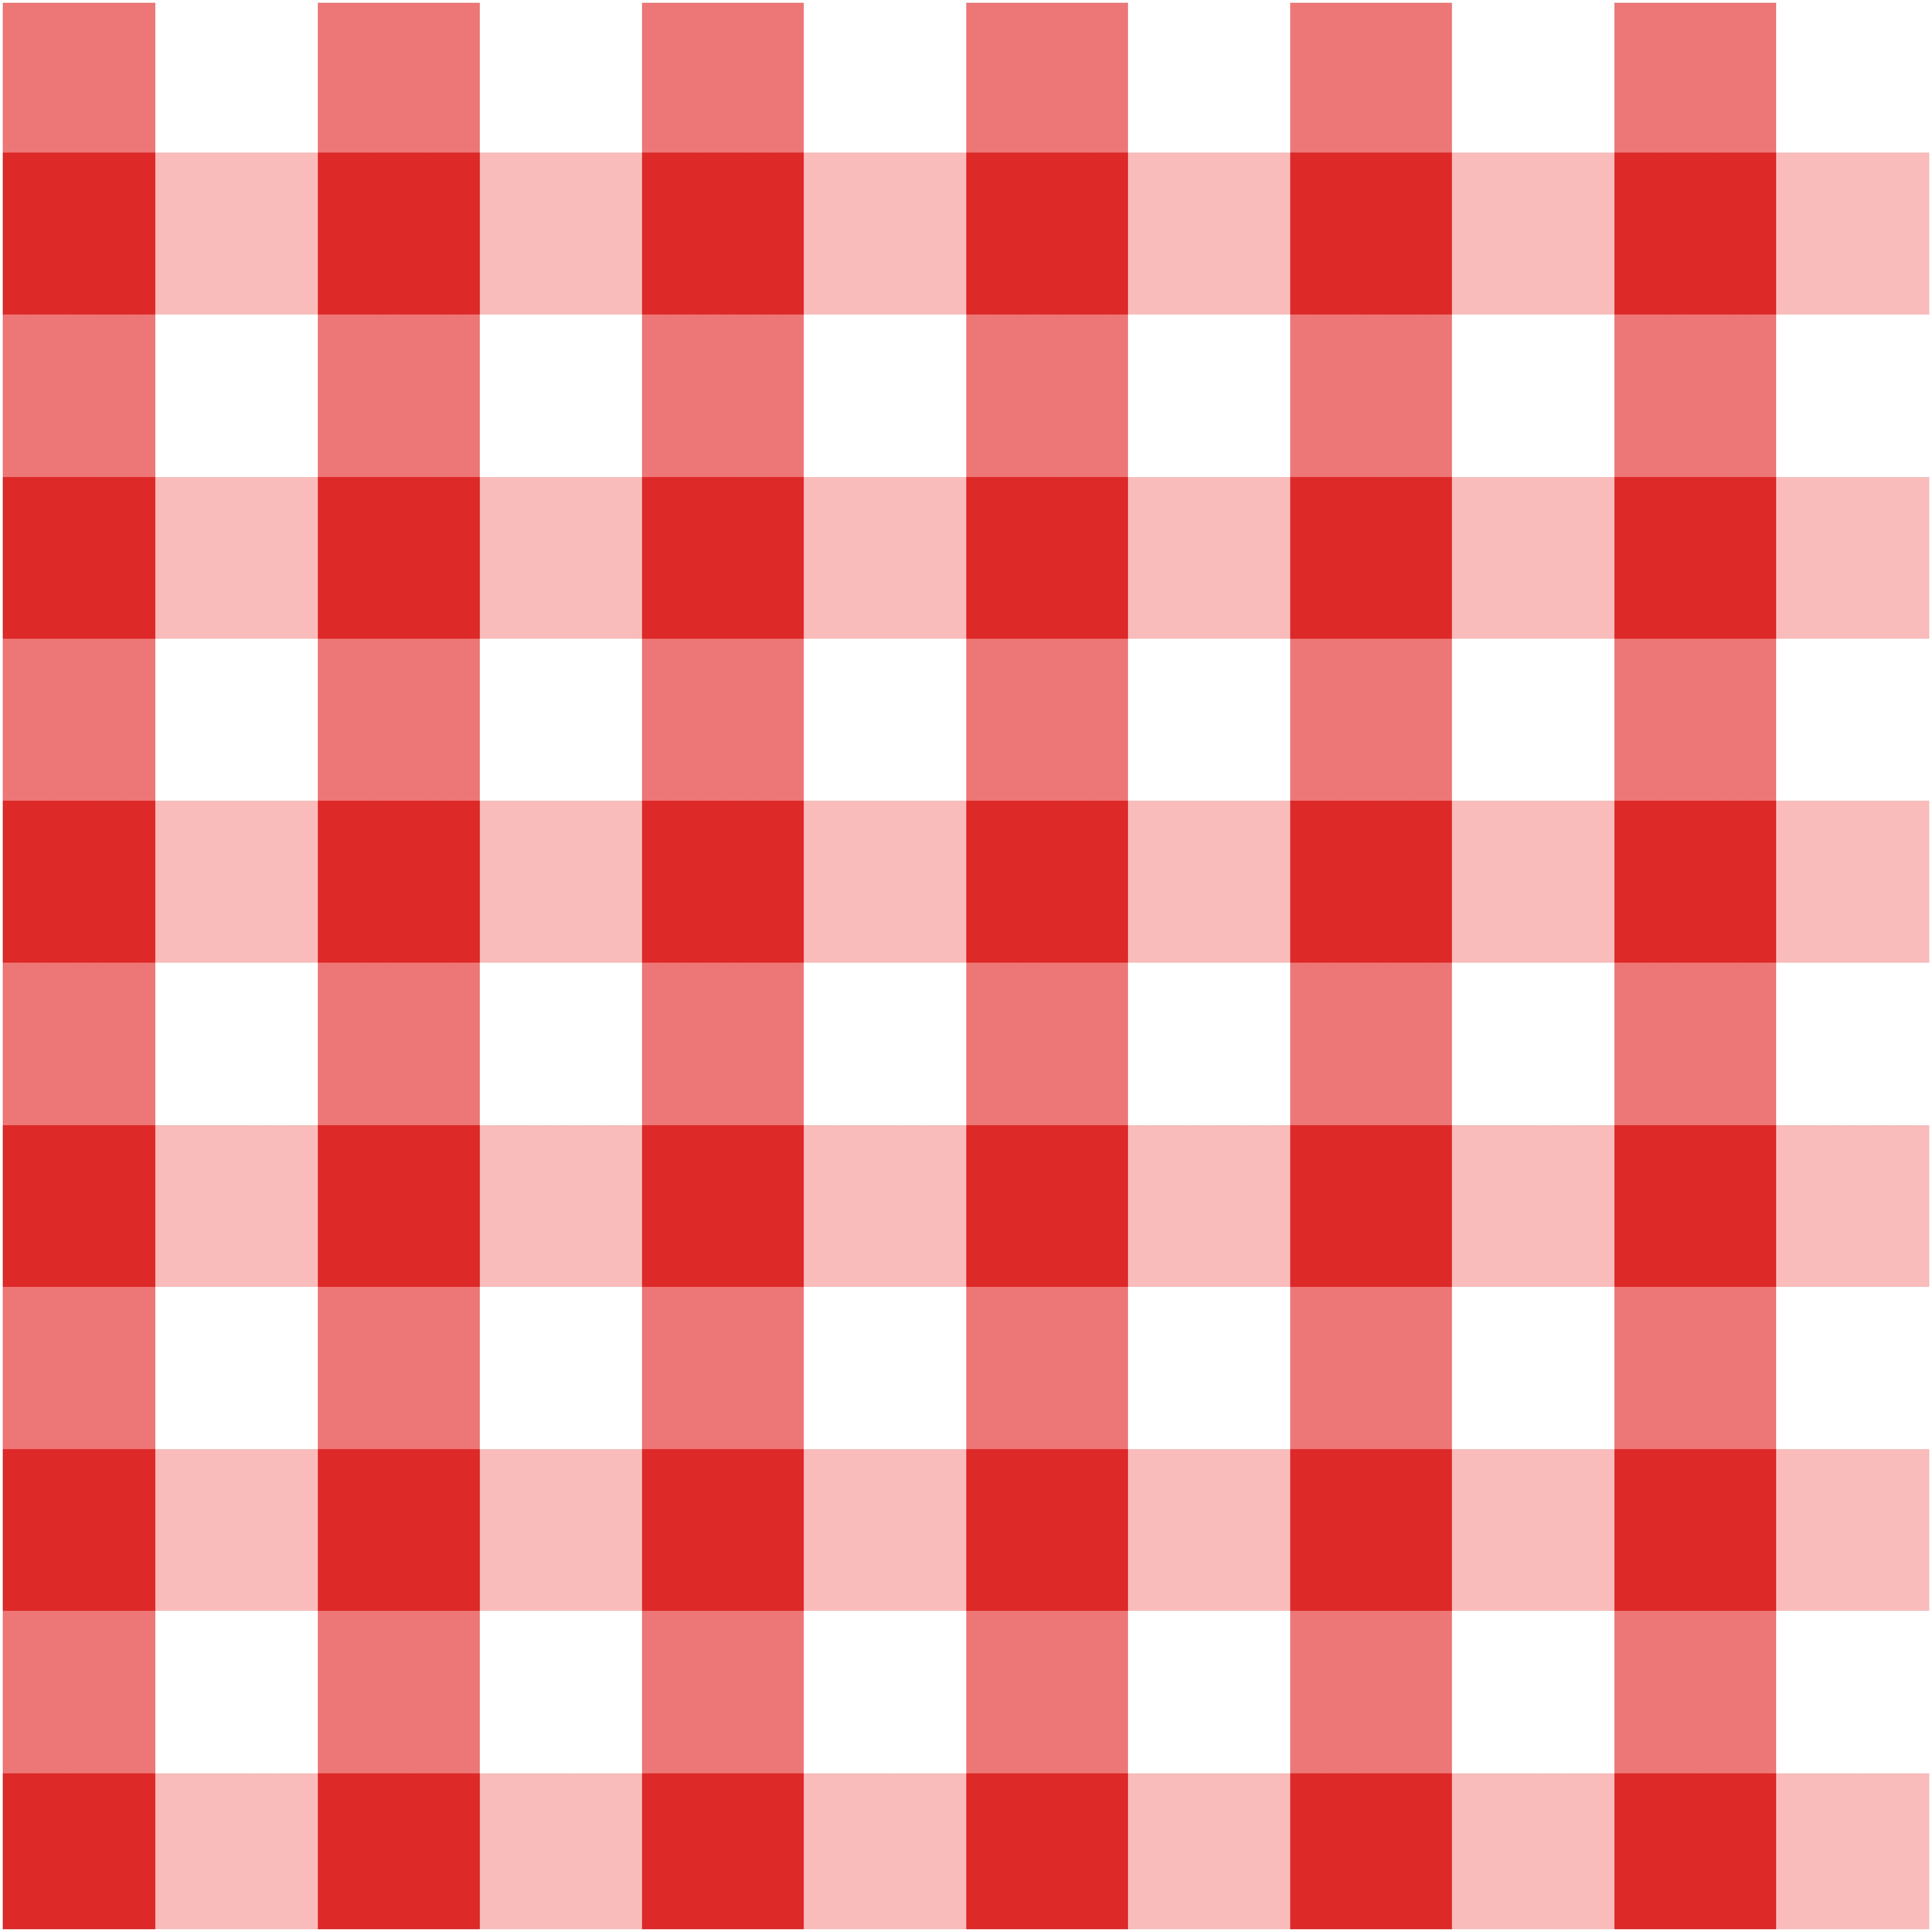 Red checkered tablecloth wine clipart freeuse Tablecloth Clipart | Free download best Tablecloth Clipart ... freeuse